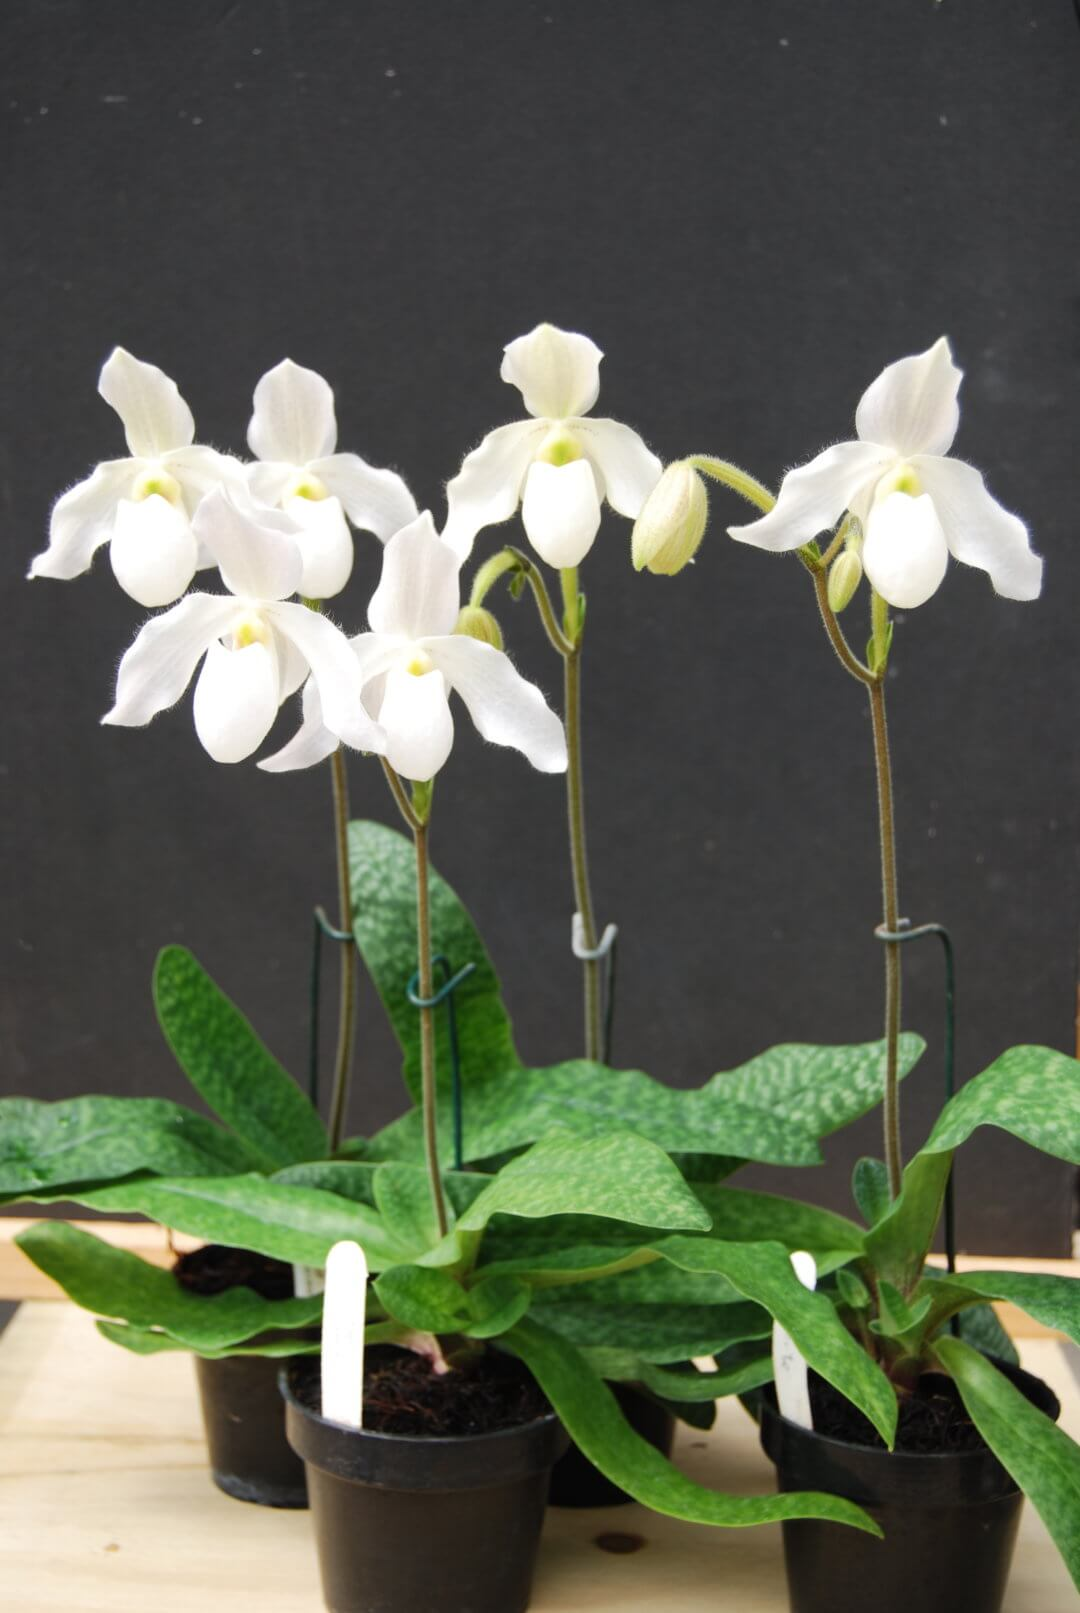 Perfect Conditions for Thriving Orchids